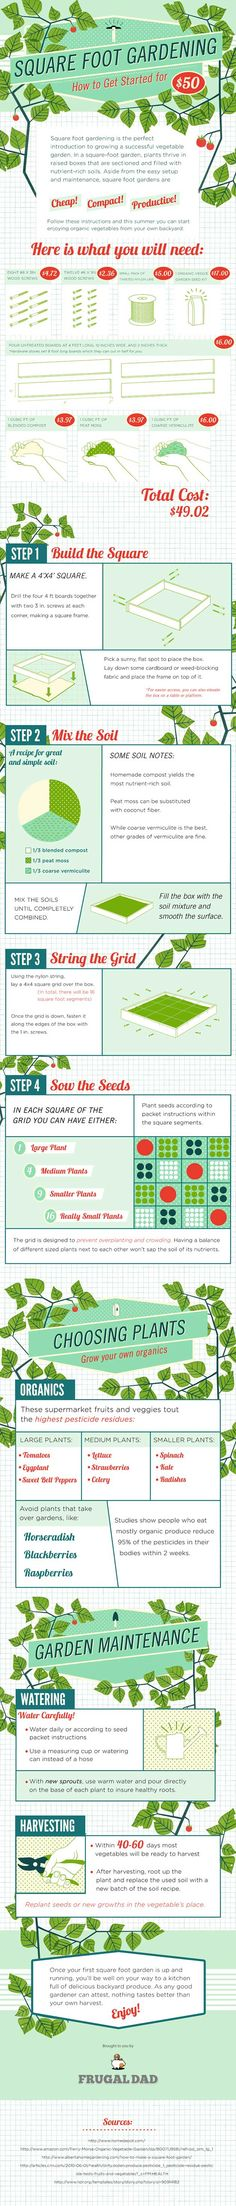 How to build & maintain your own square-foot garden | HellaWella